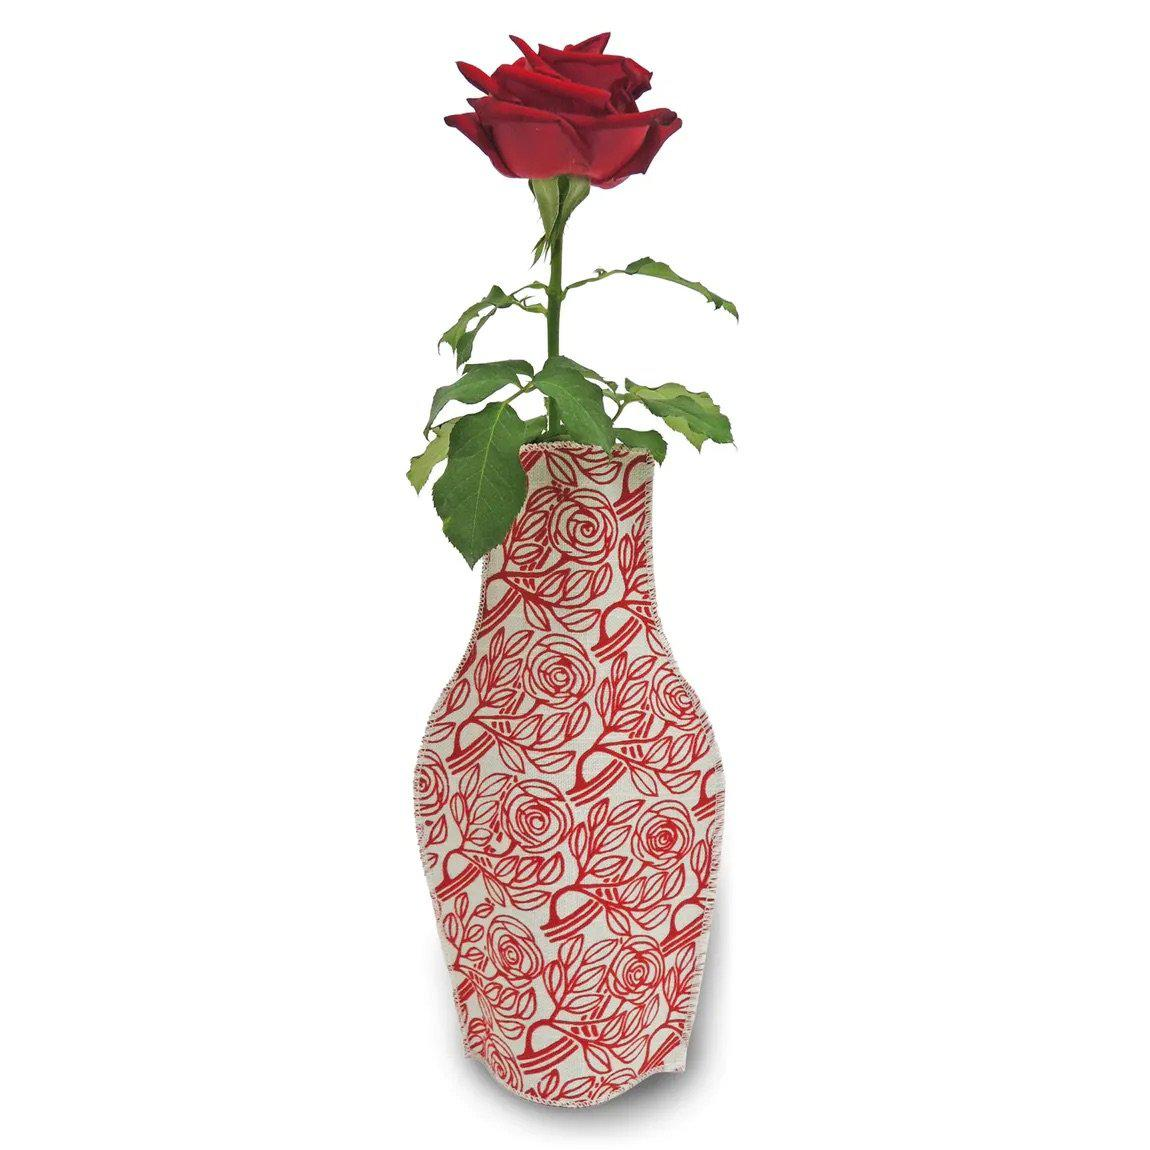 Barceloning Born Roses Cotton Flower Vase-Boomingdutch